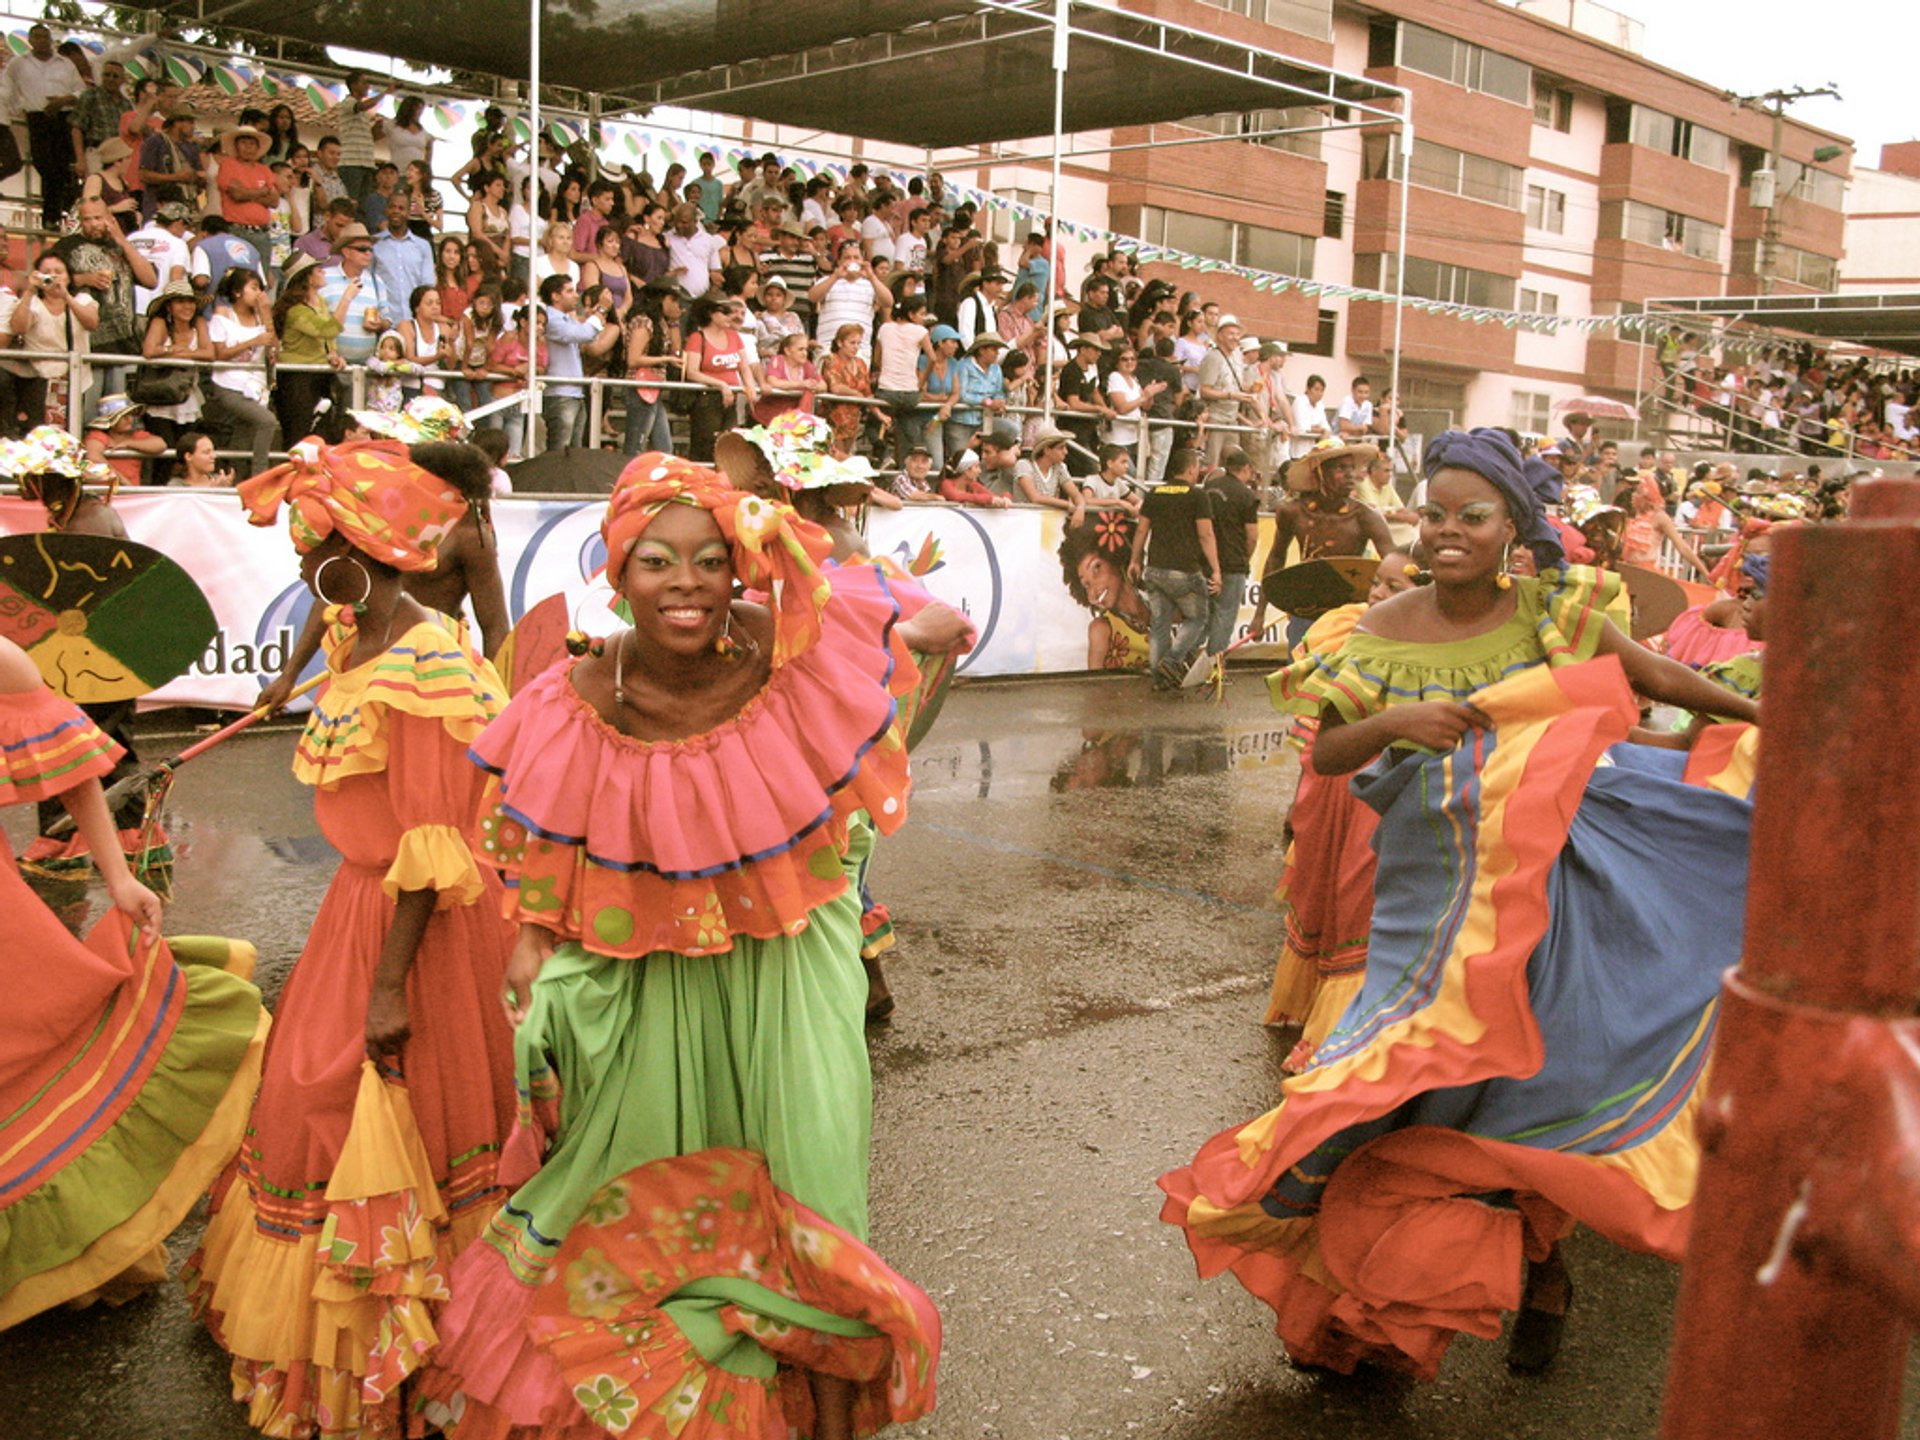 Feria de Cali in Colombia 2020 - Best Time